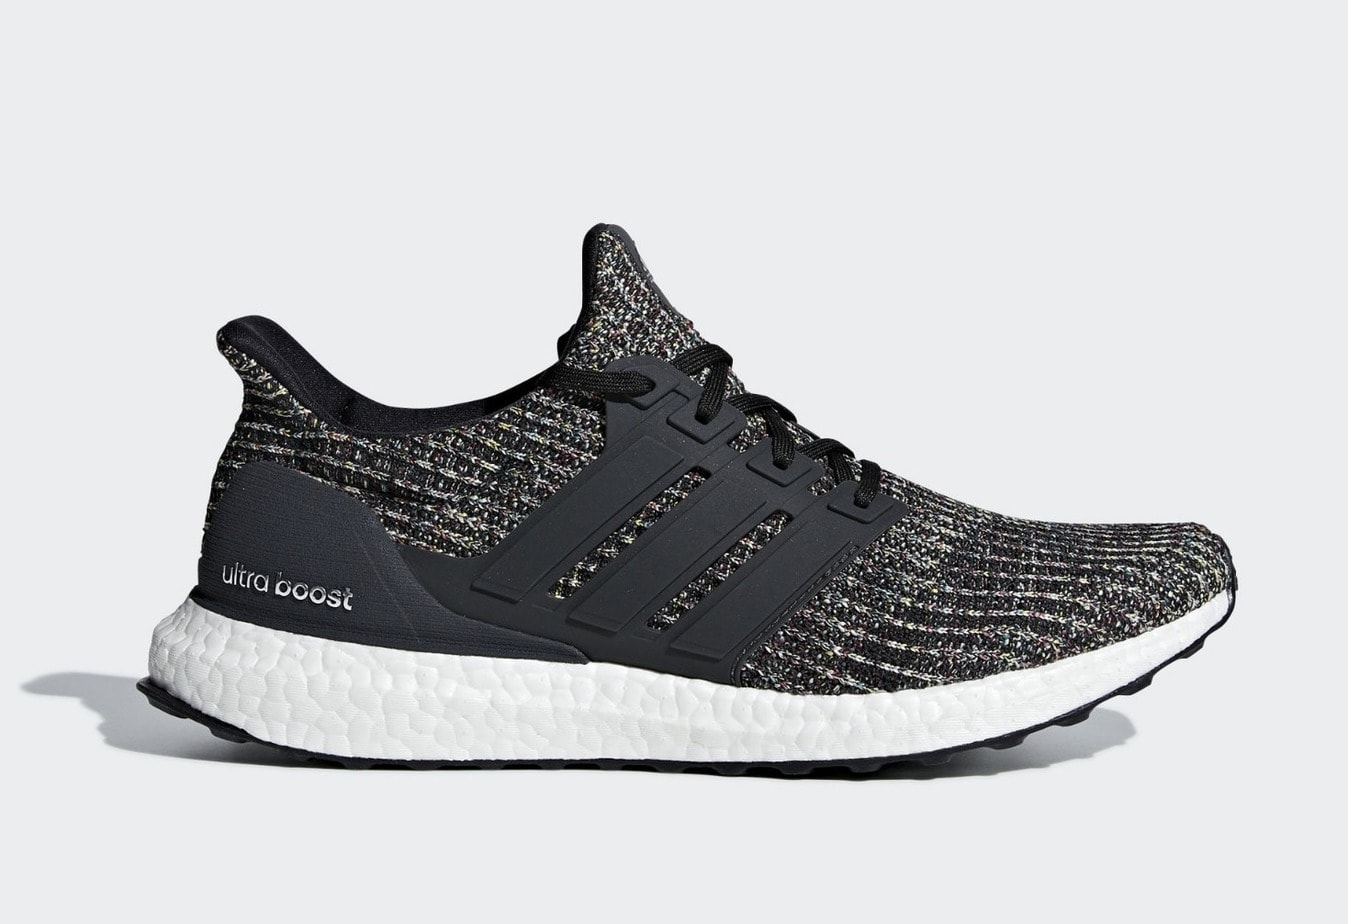 d2638f501 The adidas Ultra Boost is always up to take on a unique new colorway. The  latest new look for the ever-popular silhouette is a combination of black  and ...